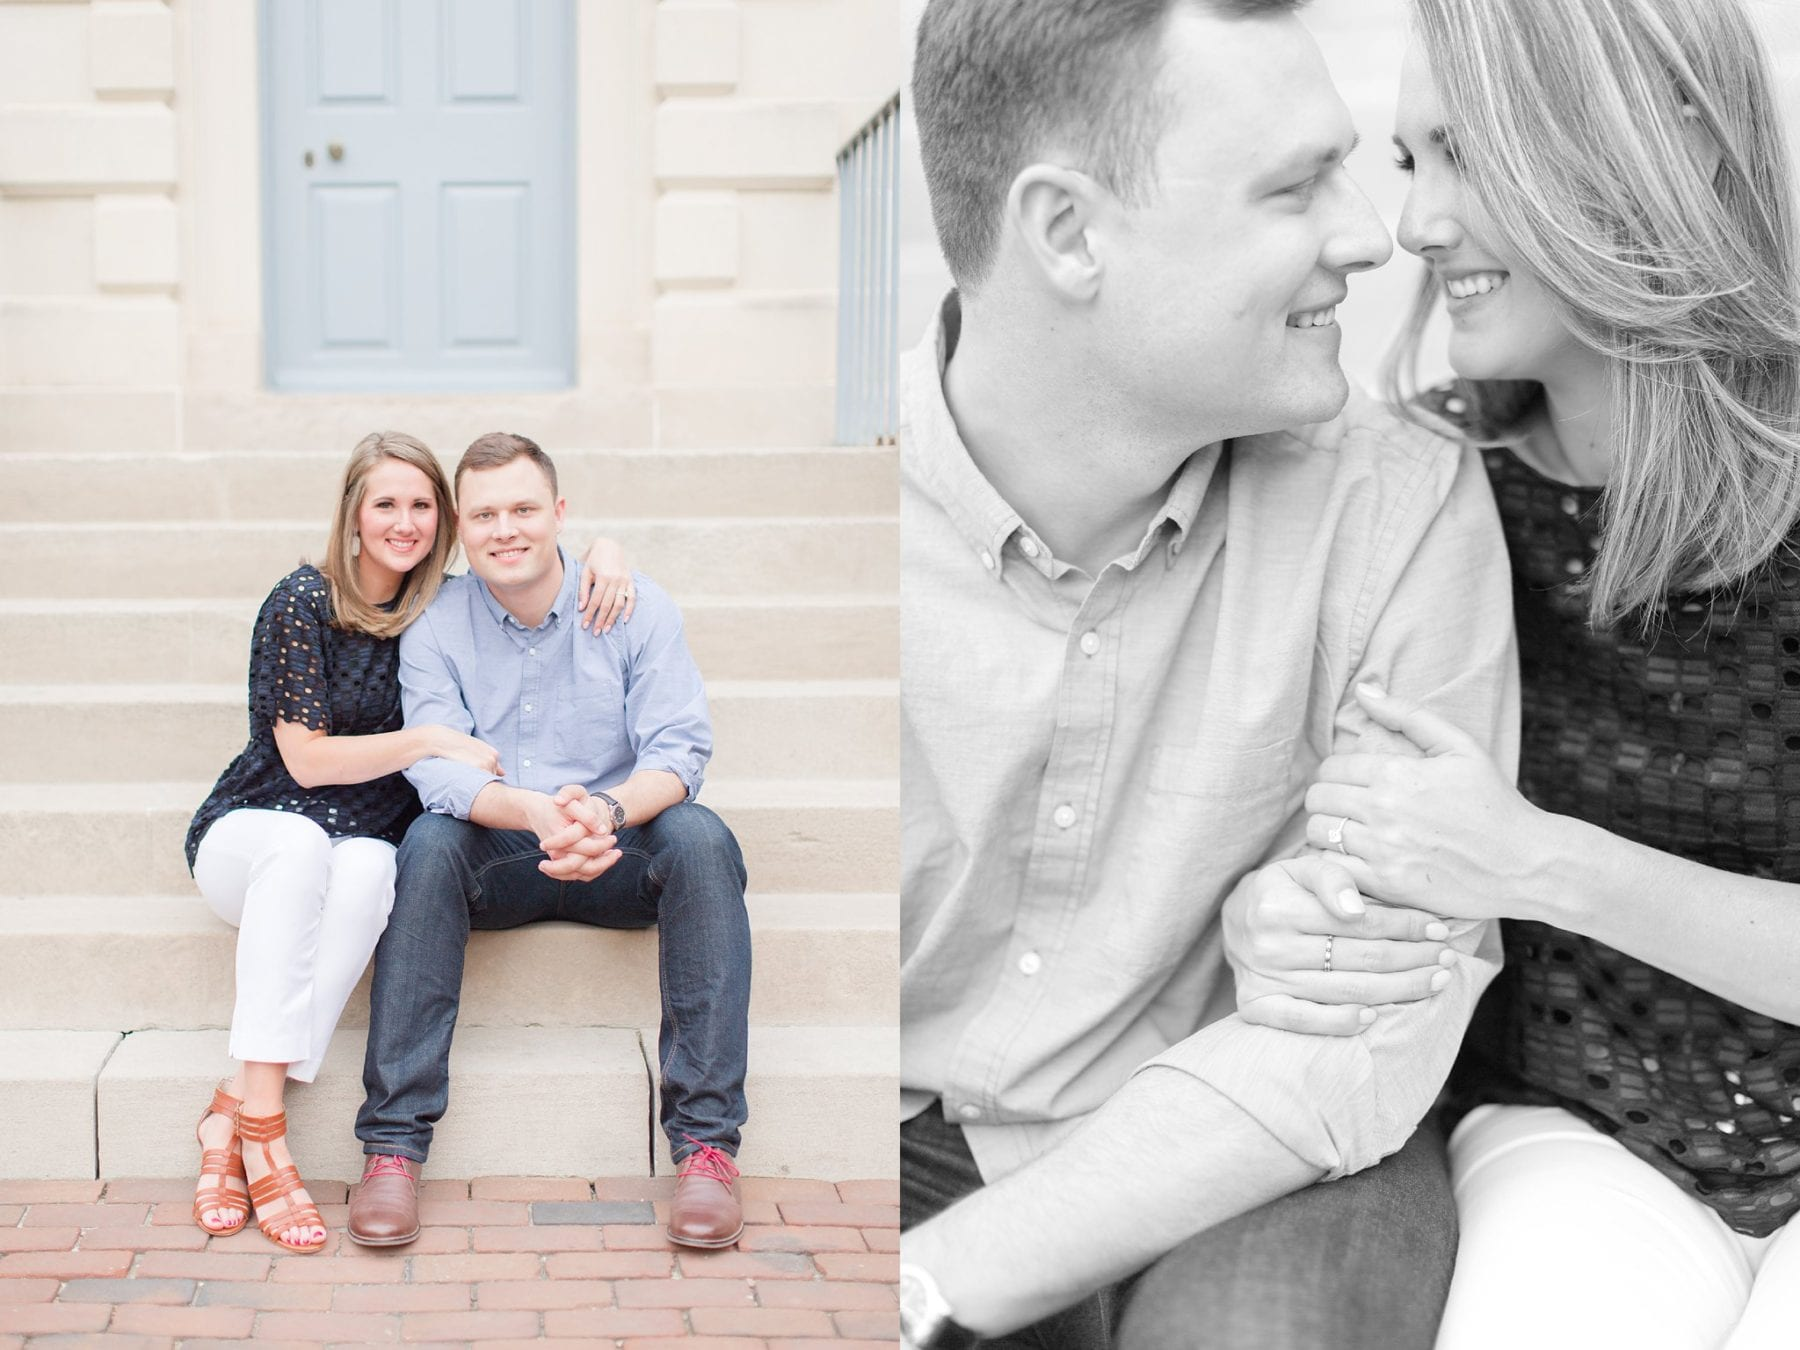 Springtime Old Town Alexandria Engagement Session Matt & Maxie Megan Kelsey Photography-284.jpg